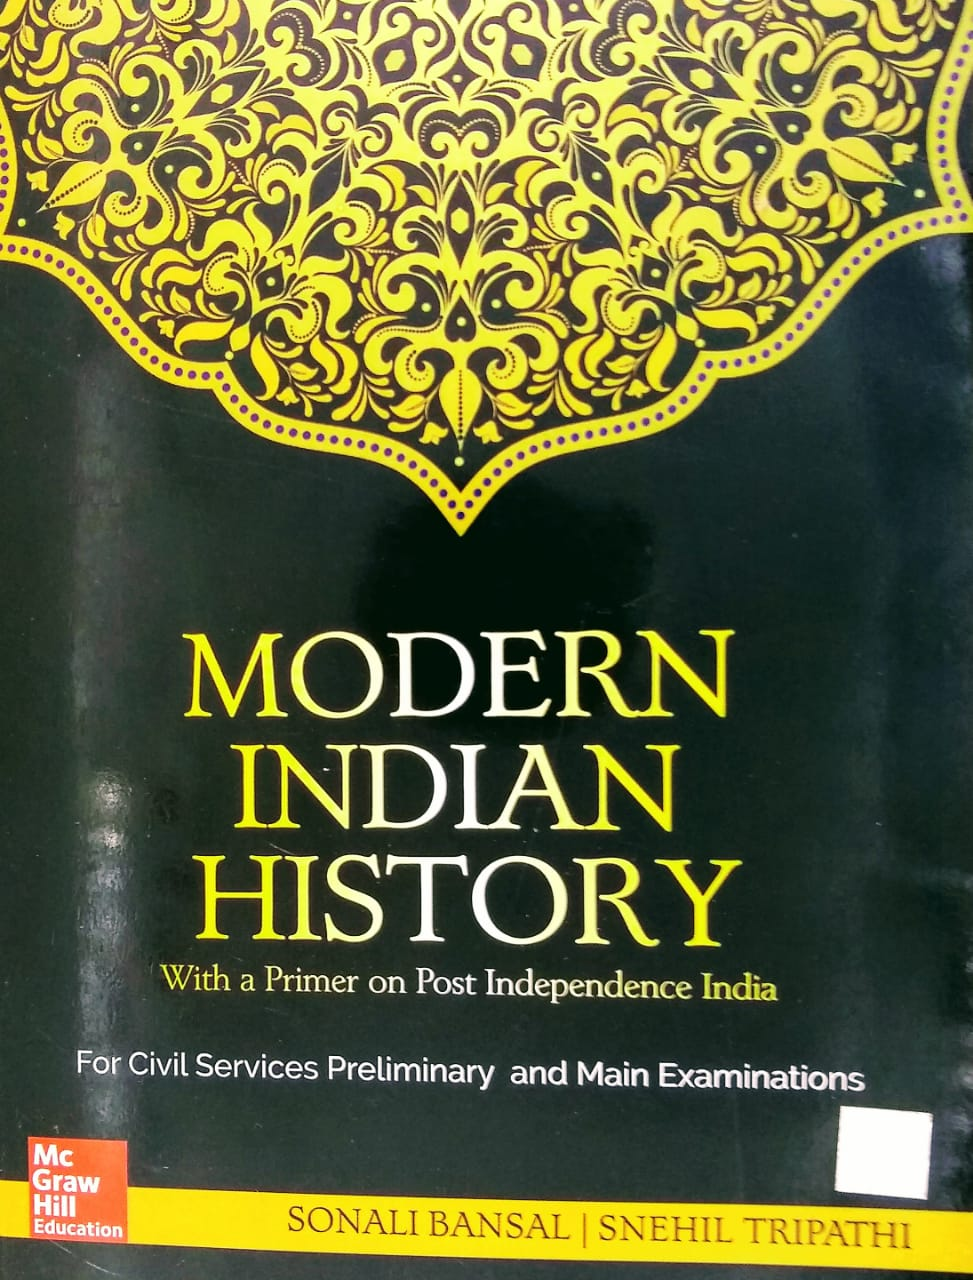 MODERN INDIAN HISTORY BY Mc Mcgraw Hill Education